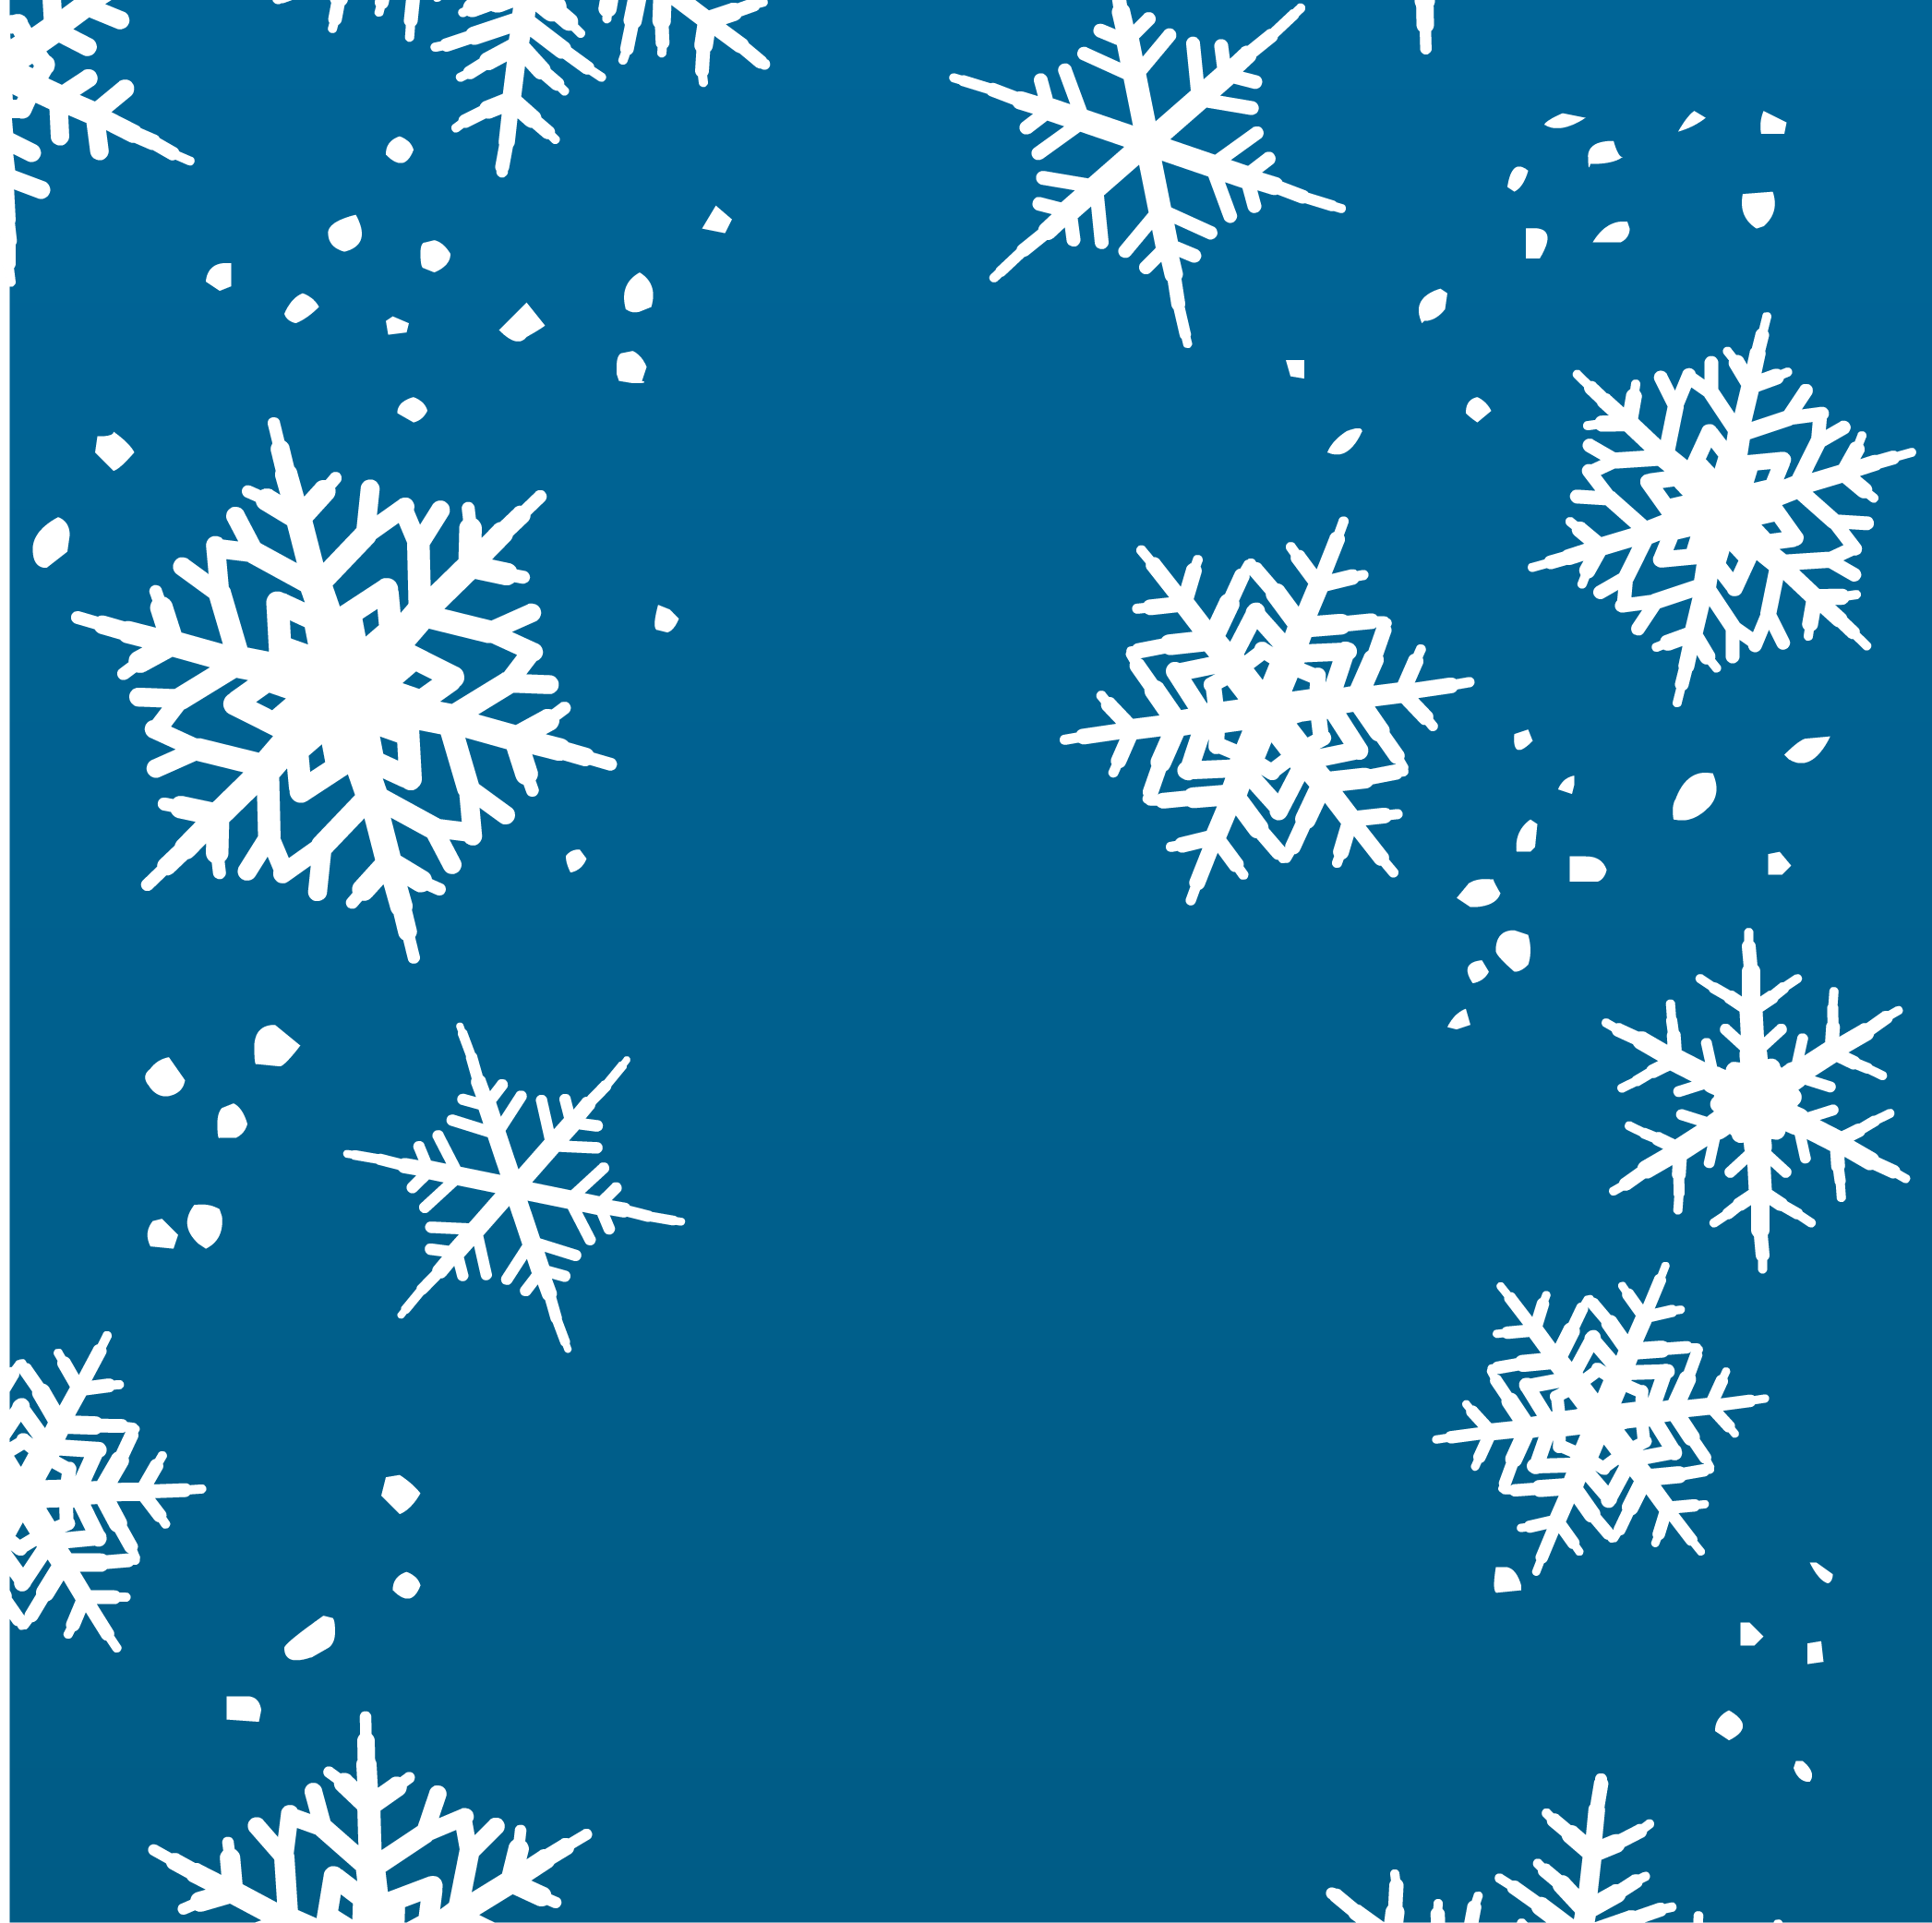 navy blue drawing snowflake wallpaper images #1655